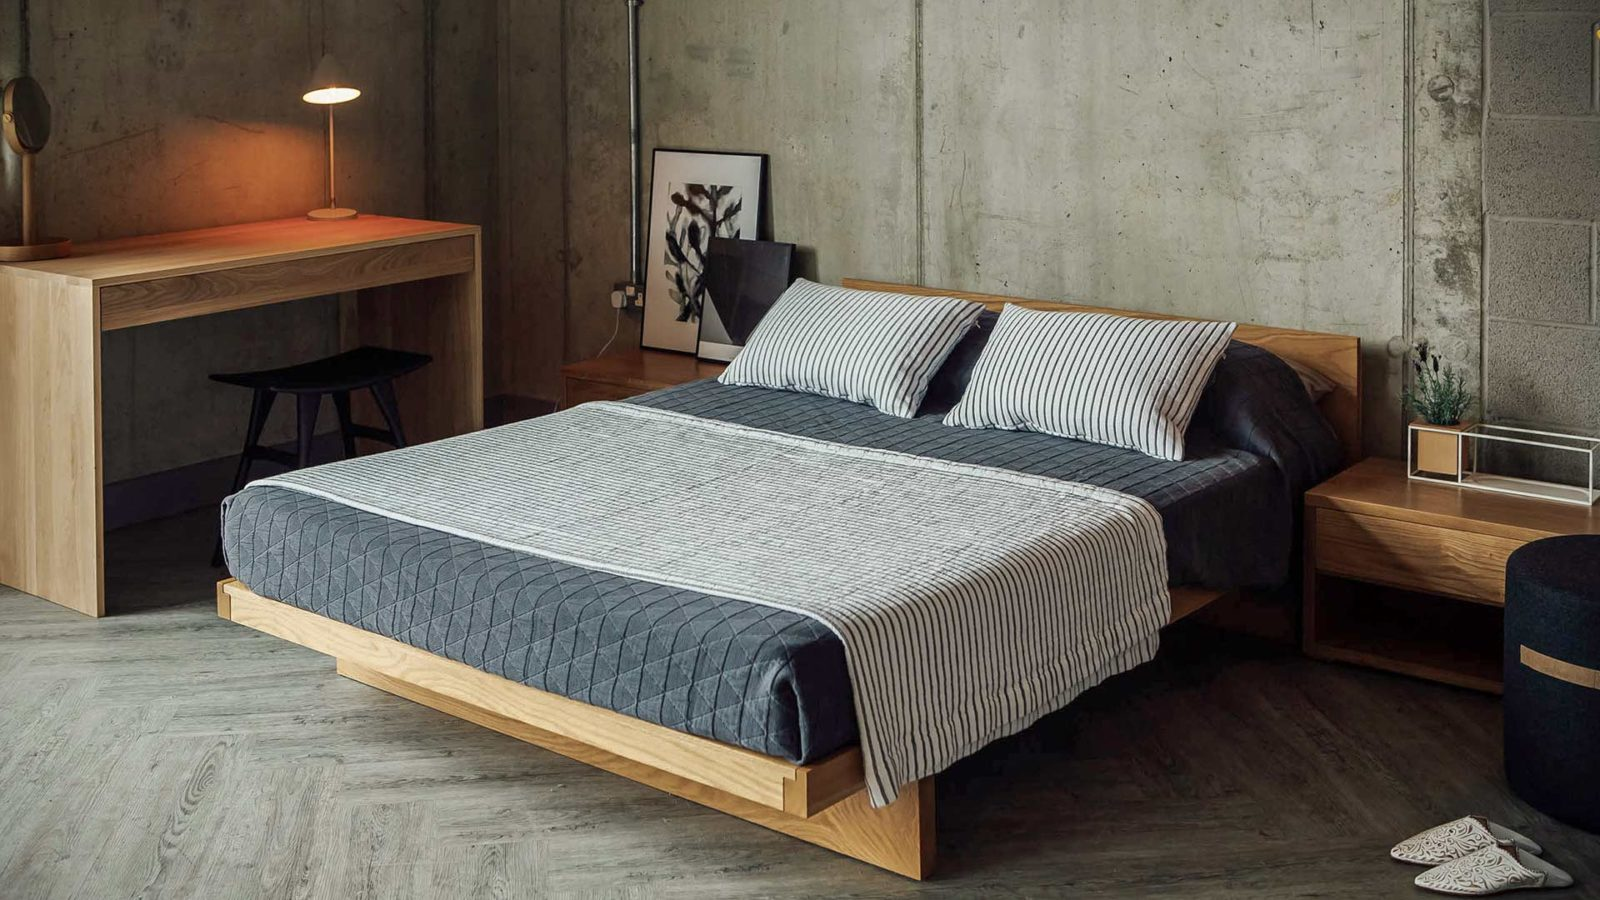 Our low Japanese style Kyoto bed in Solid Oak and Kingsize.